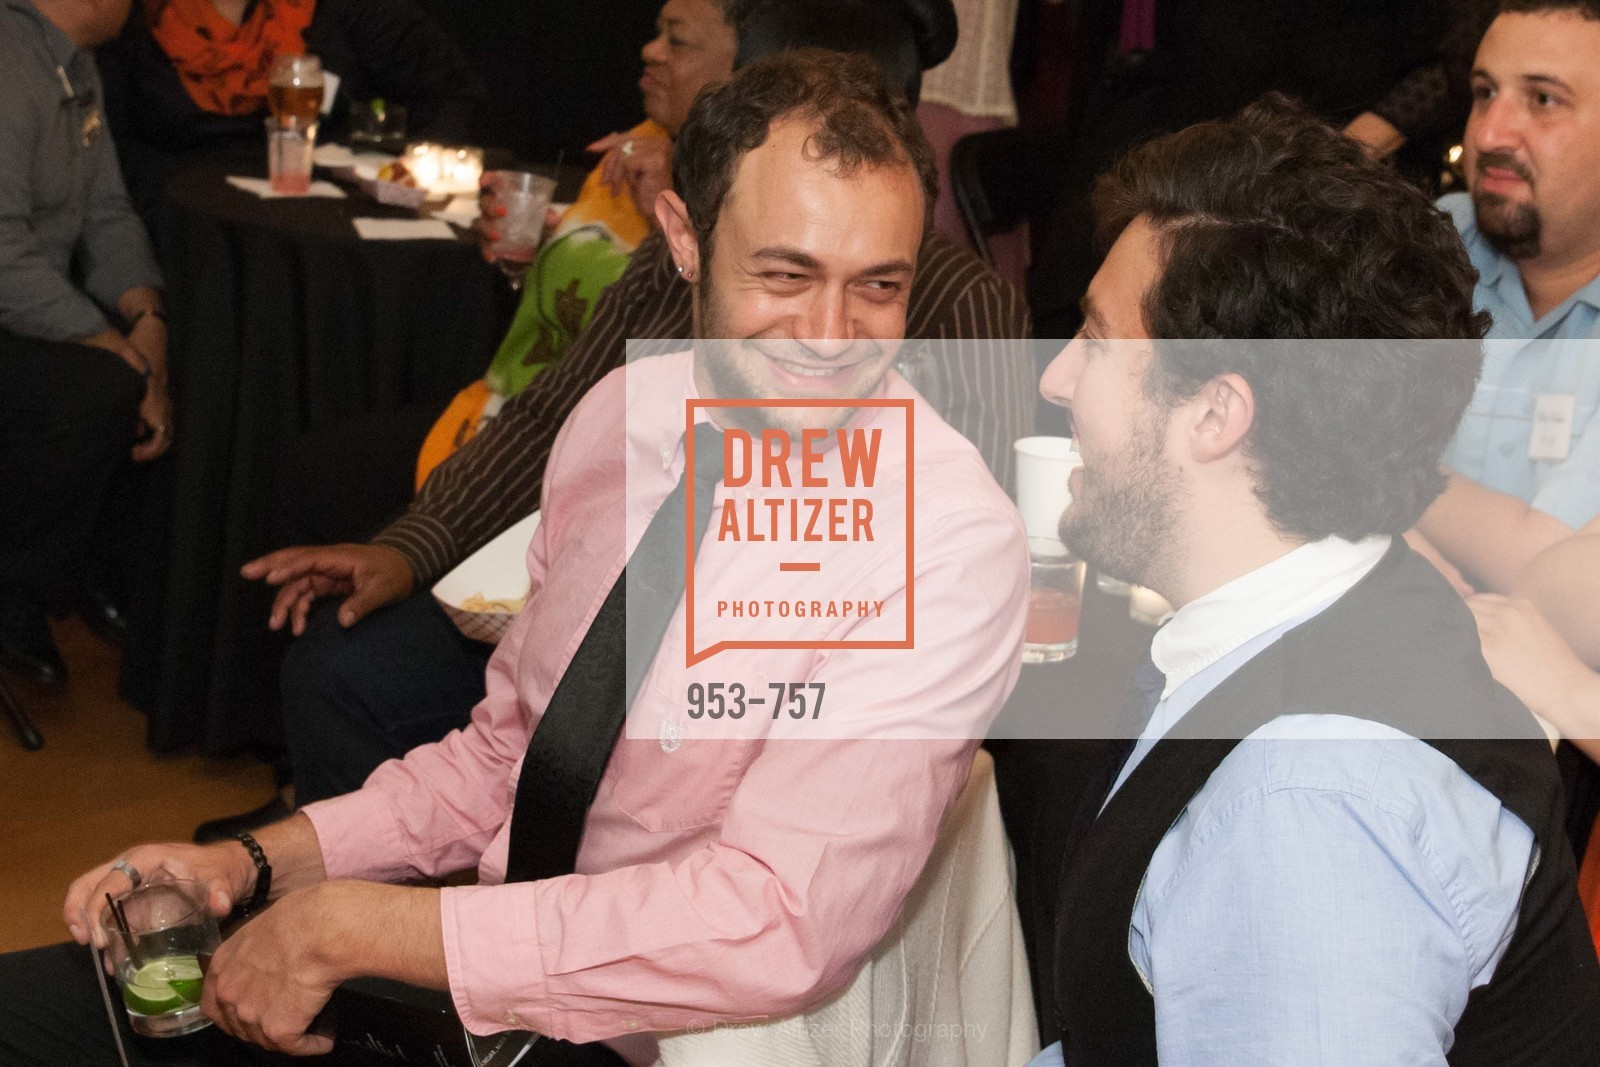 Extras, HOMELESS PRENATAL PROGRAM Our House, Our Mission Gala, May 30th, 2015, Photo,Drew Altizer, Drew Altizer Photography, full-service agency, private events, San Francisco photographer, photographer california